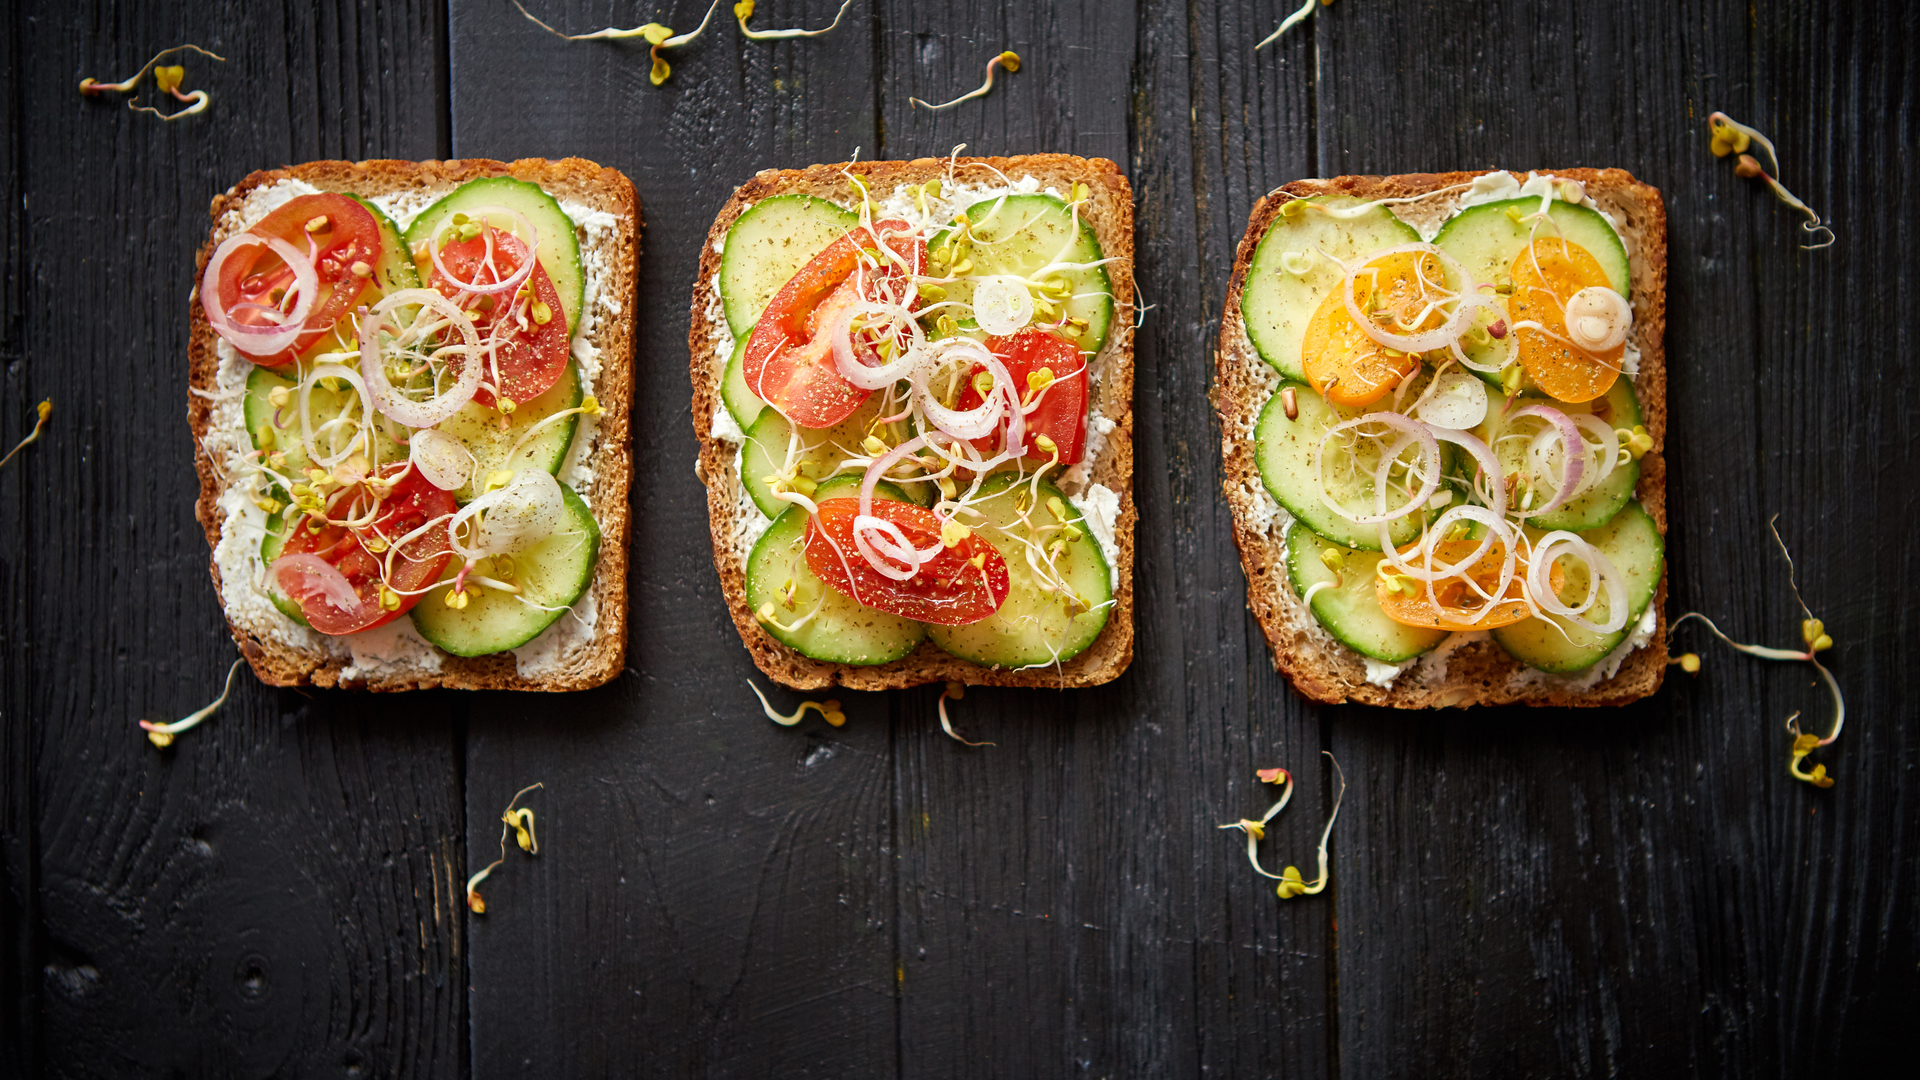 Toast made from Sprouted Bread for a Healthy Breakfast